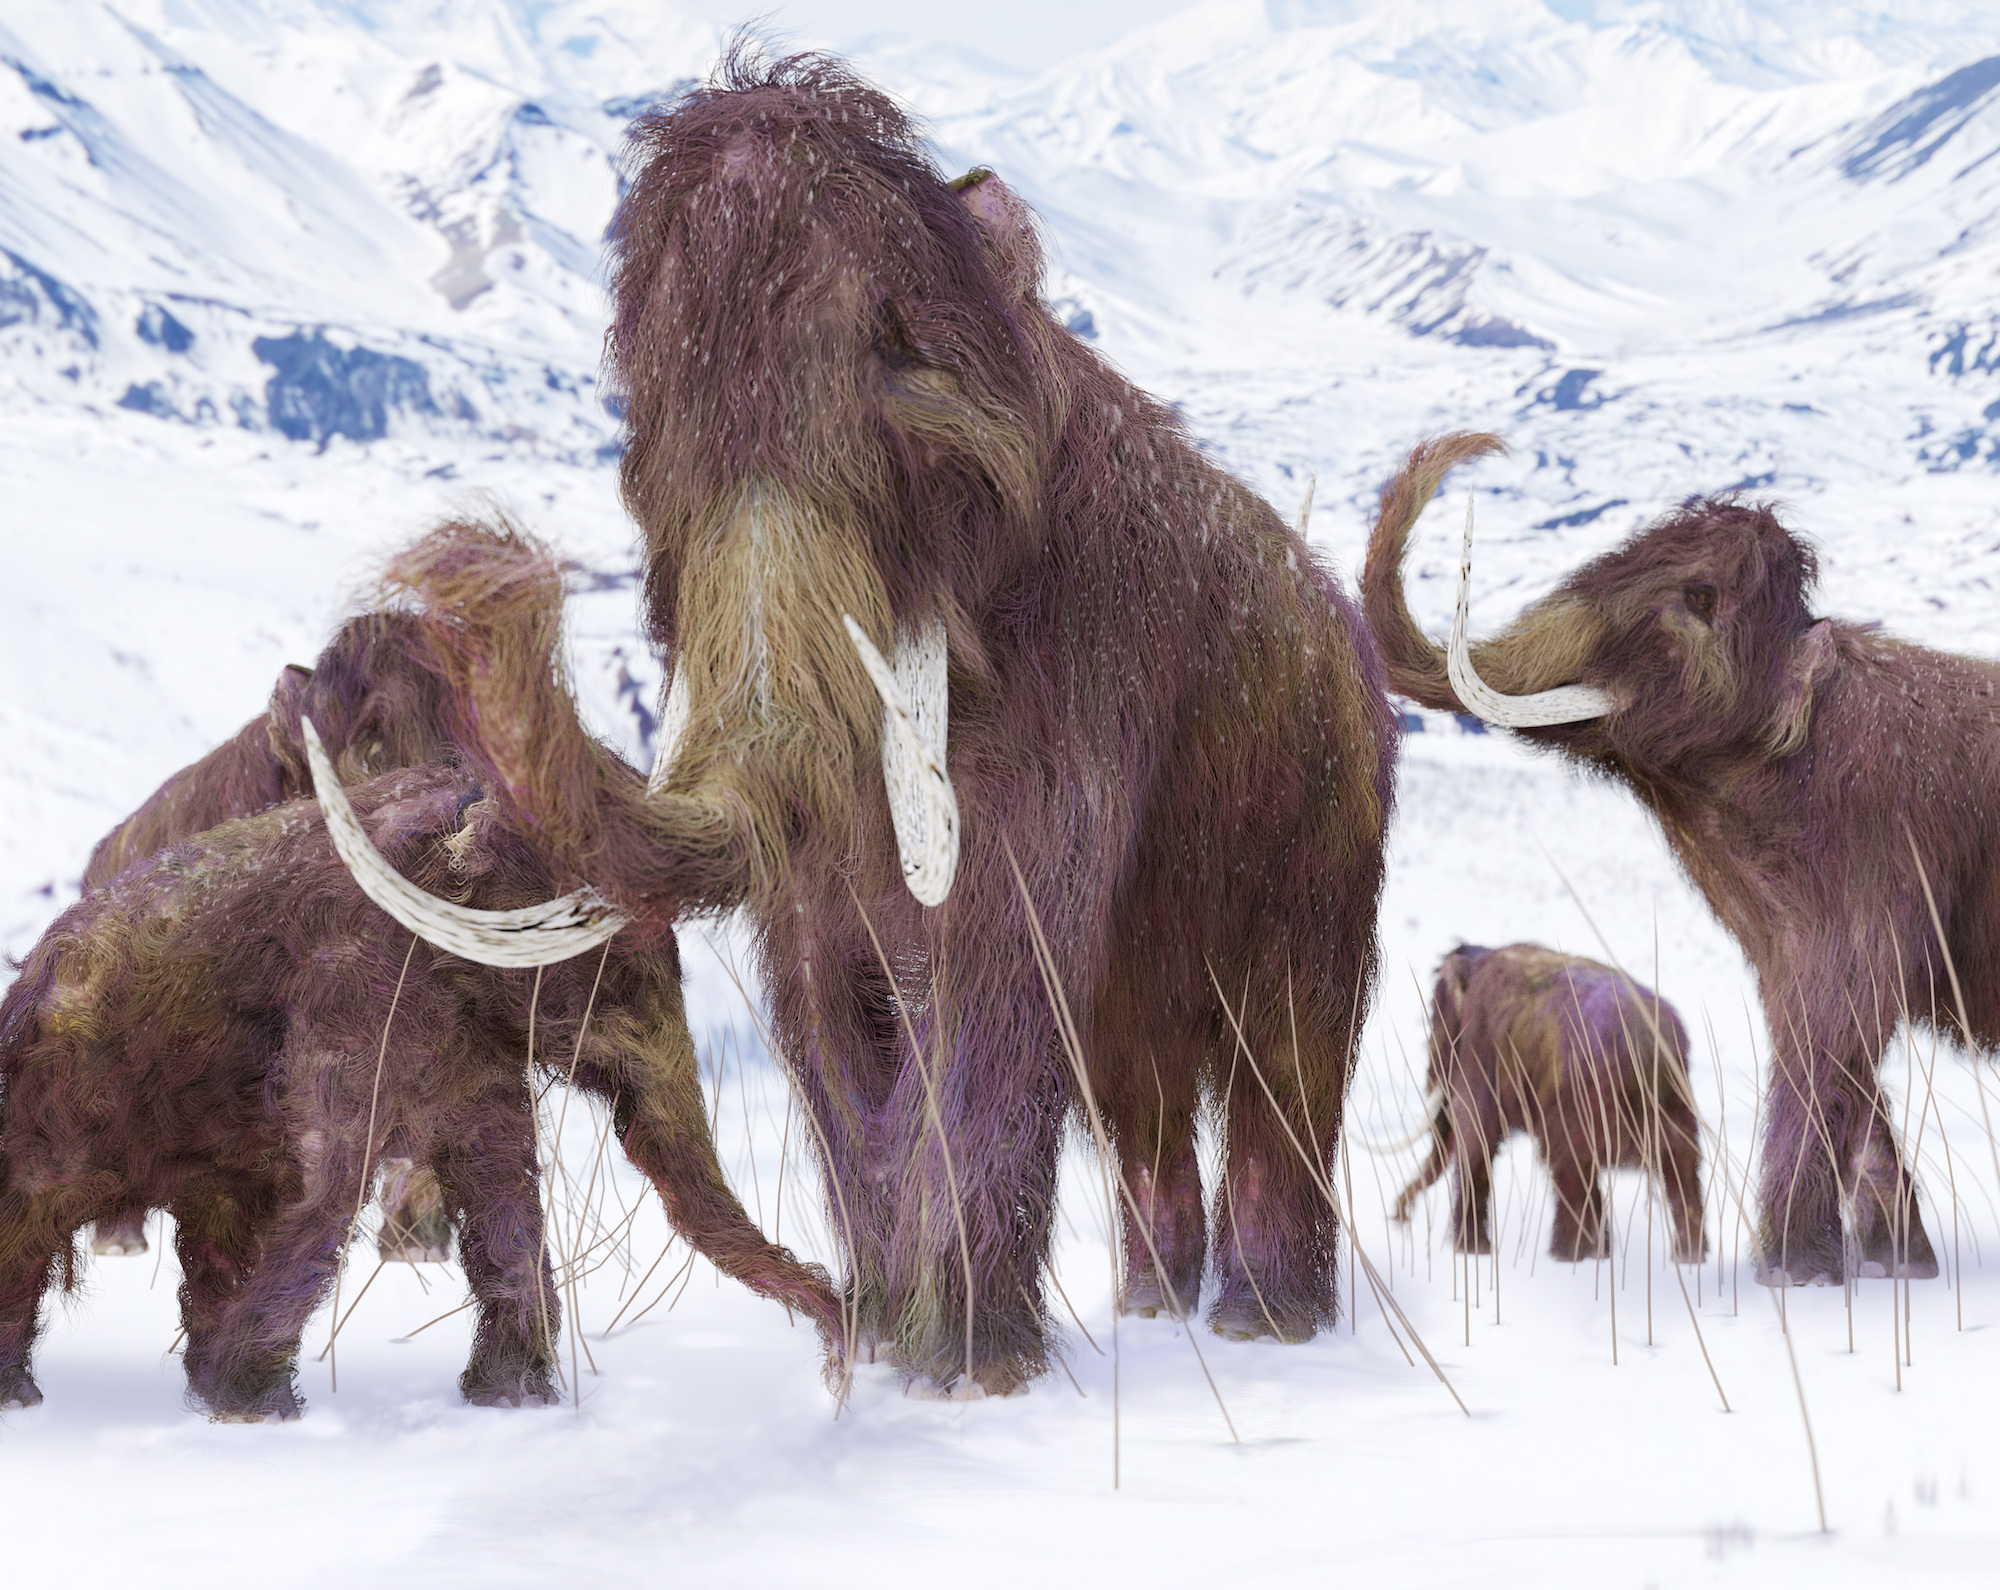 The last woolly mammoths on Earth had disastrous DNA | Live Science